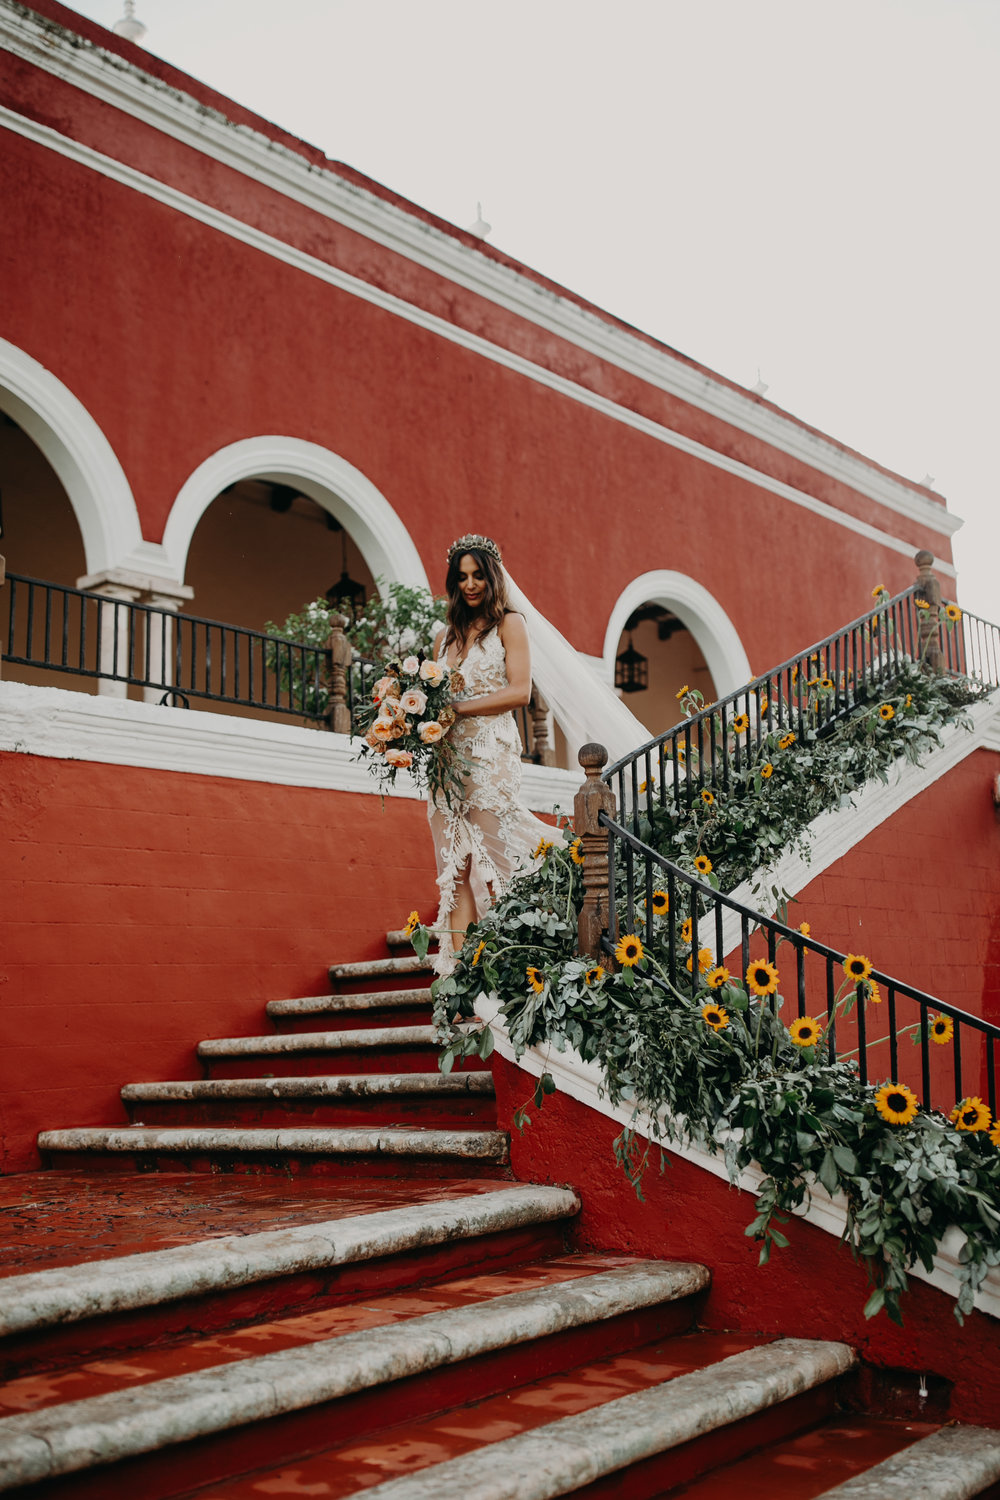 Hacienda Temozon Yucatan Mexico Wedding | Ida & Peter Emily Magers Photography-962.jpg